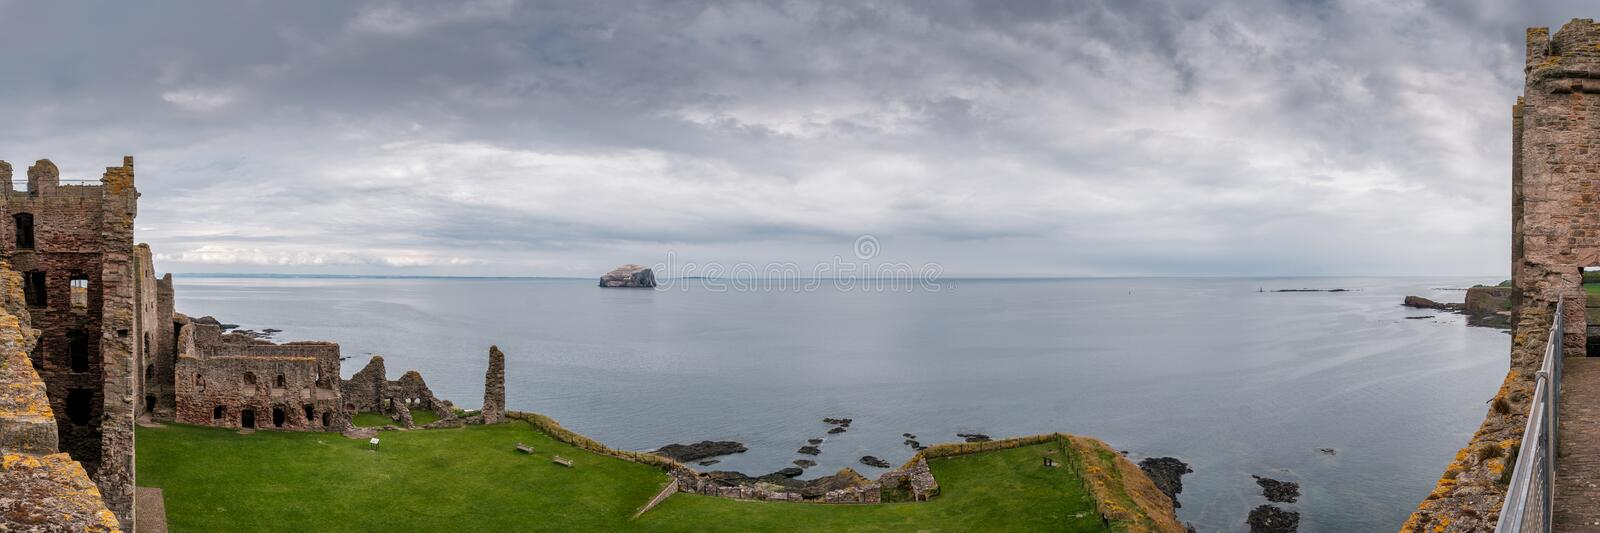 Panoramic view from Tantallon Castle and Bass Rock in Scotland royalty free stock photo